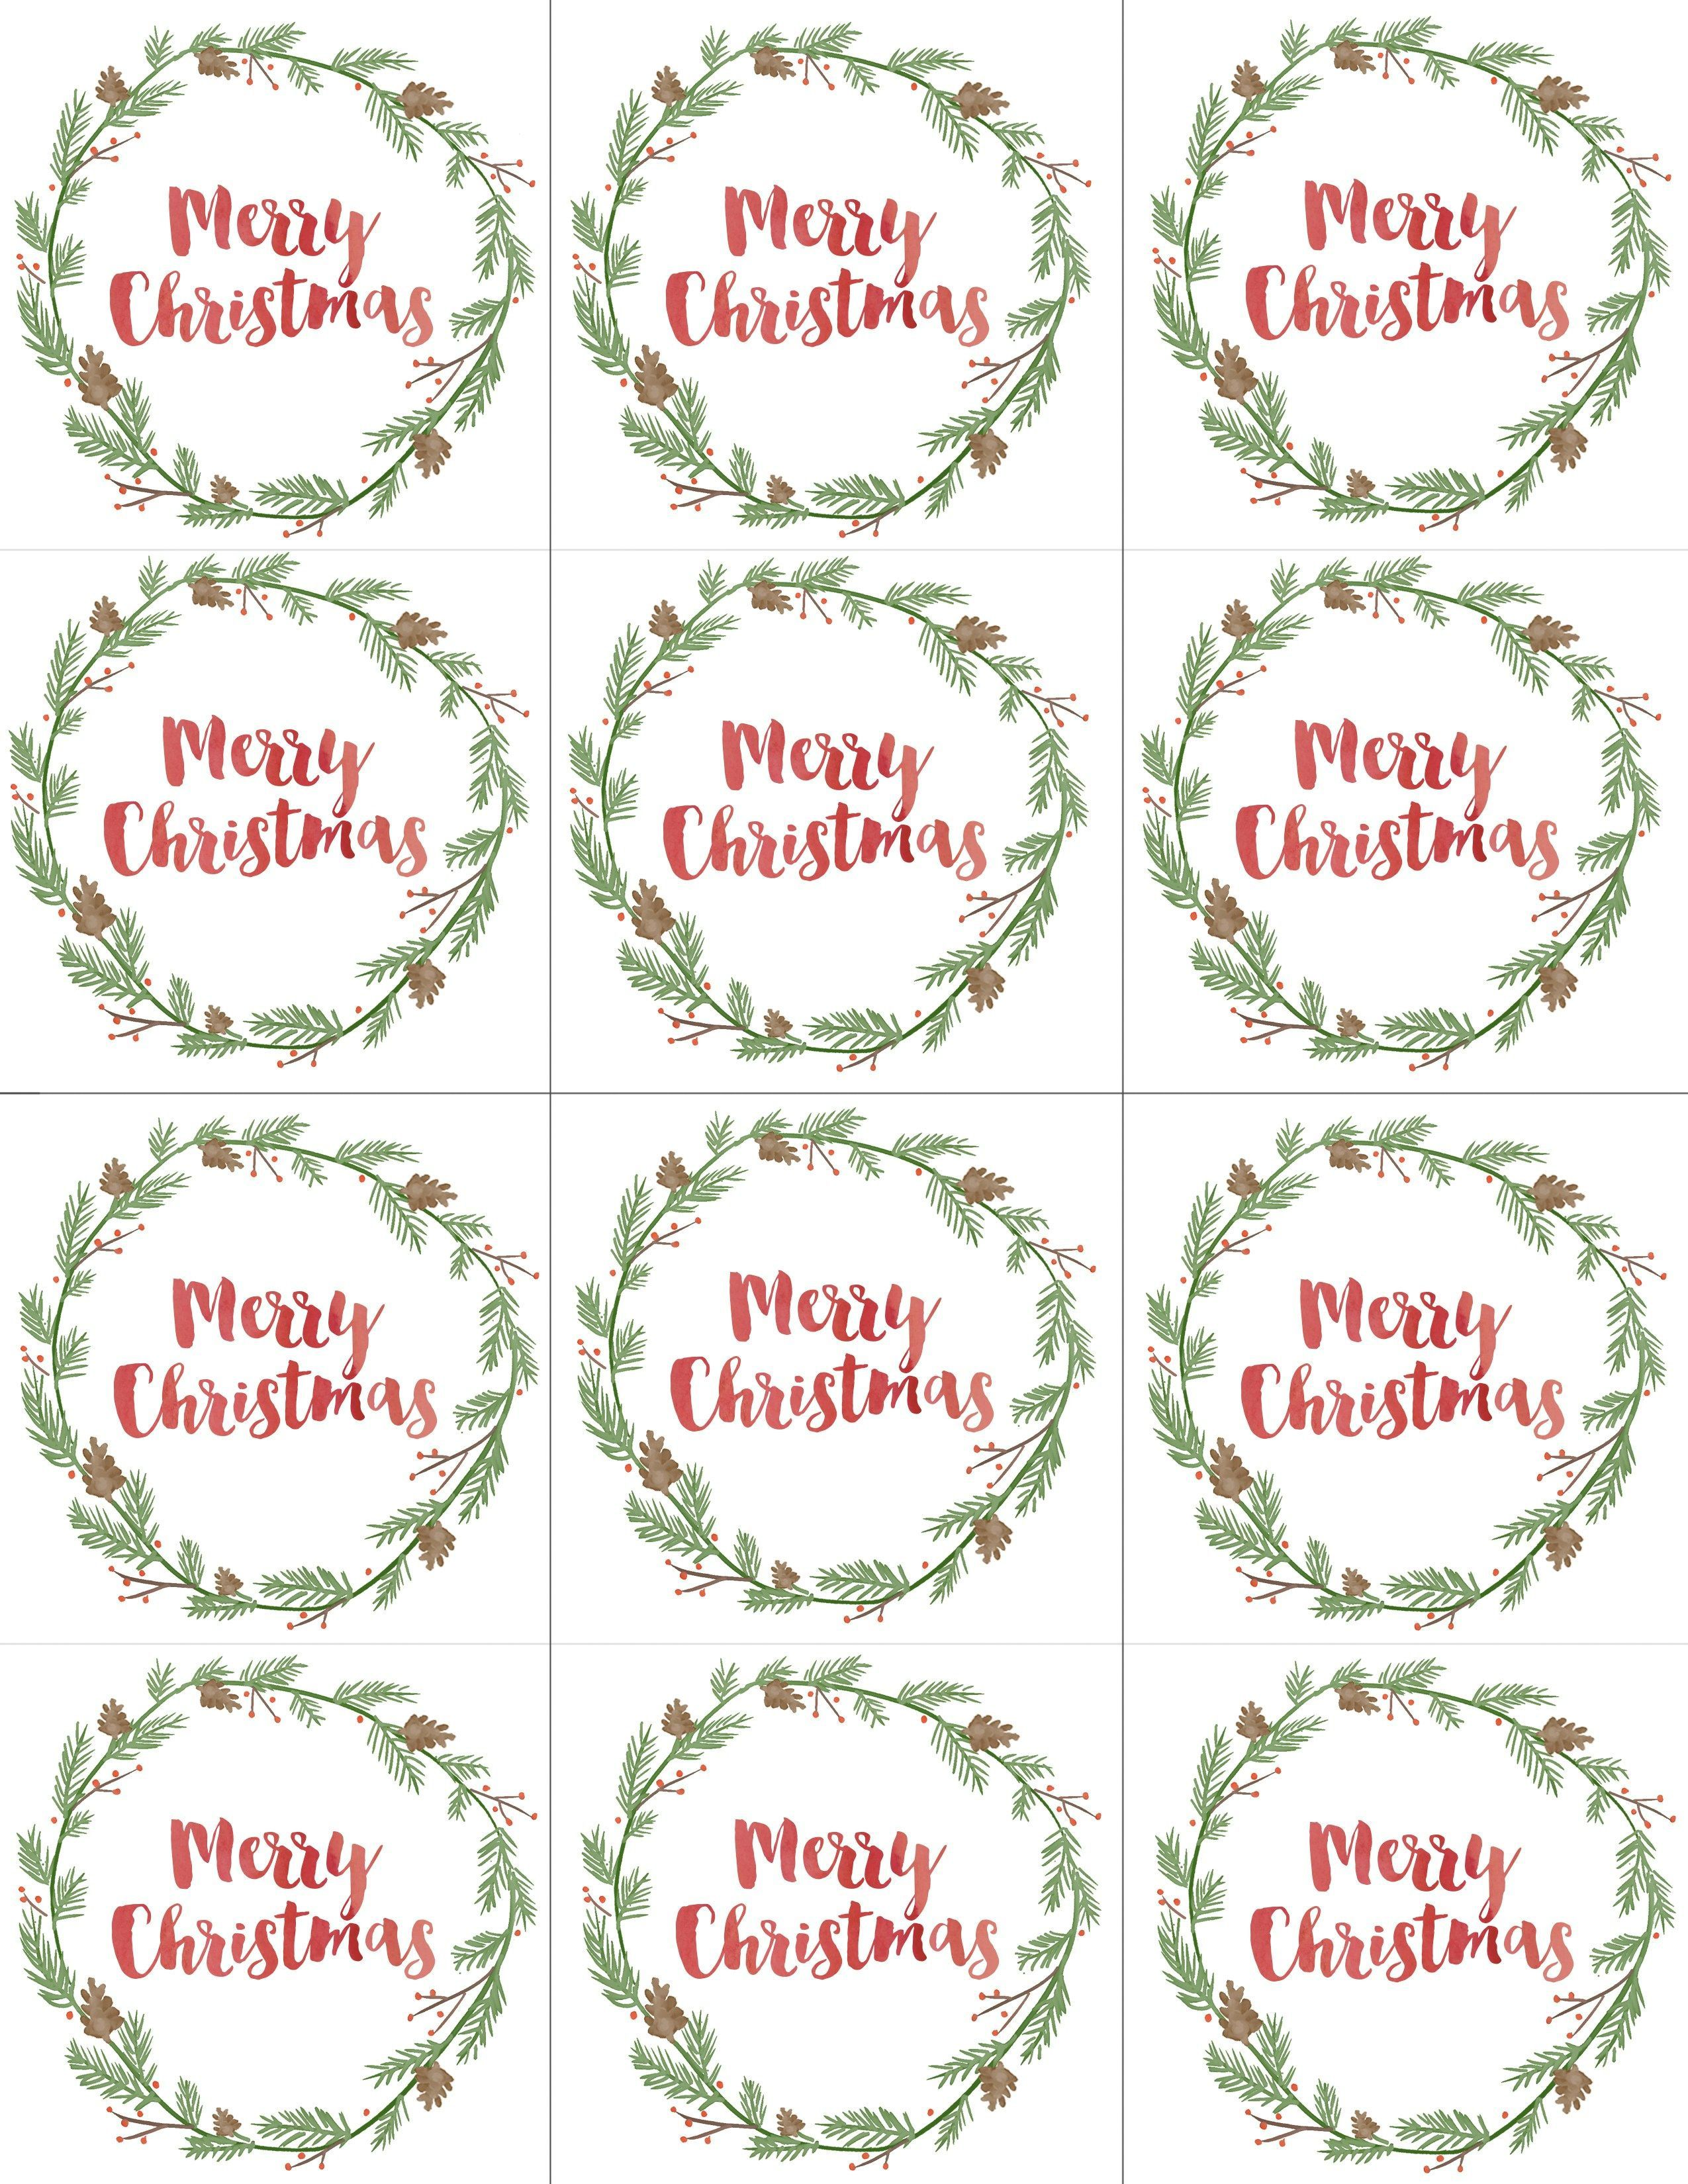 003 Unbelievable Printable Christma Gift Tag Template Concept  Templates Free Holiday For WordFull